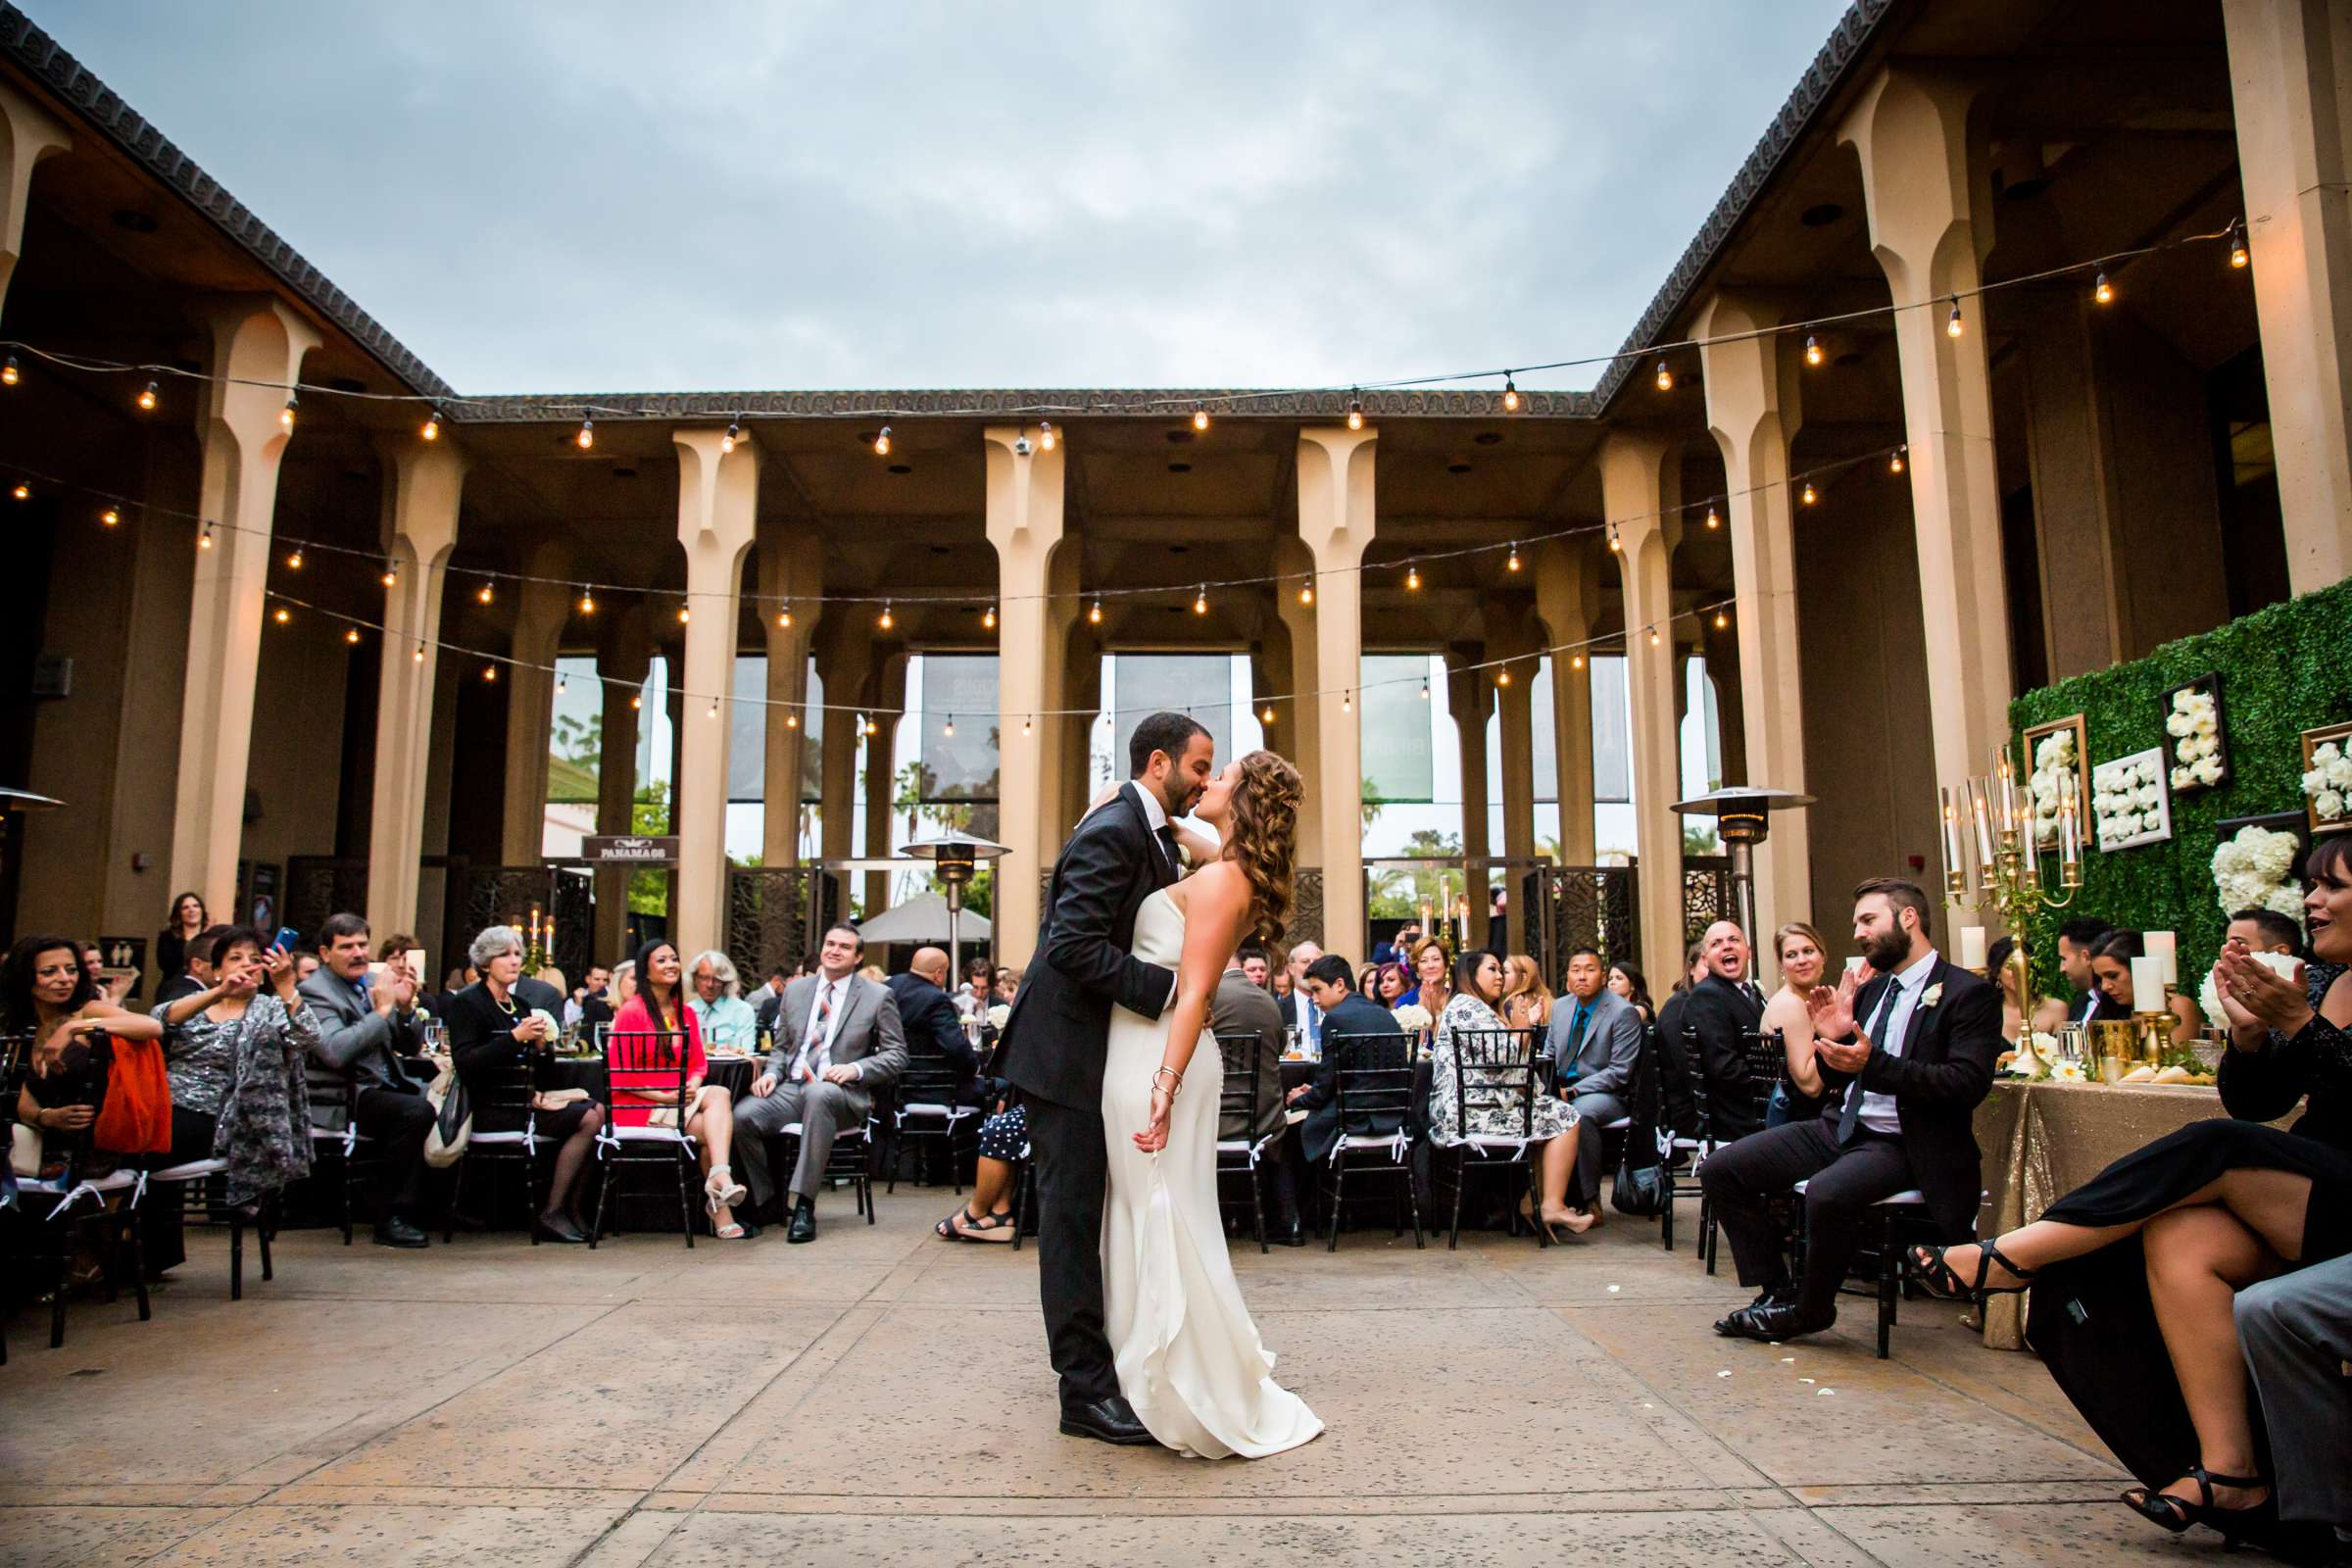 San Diego Museum of Art Wedding coordinated by First Comes Love Weddings & Events, Ruthie and Larry Wedding Photo #236845 by True Photography